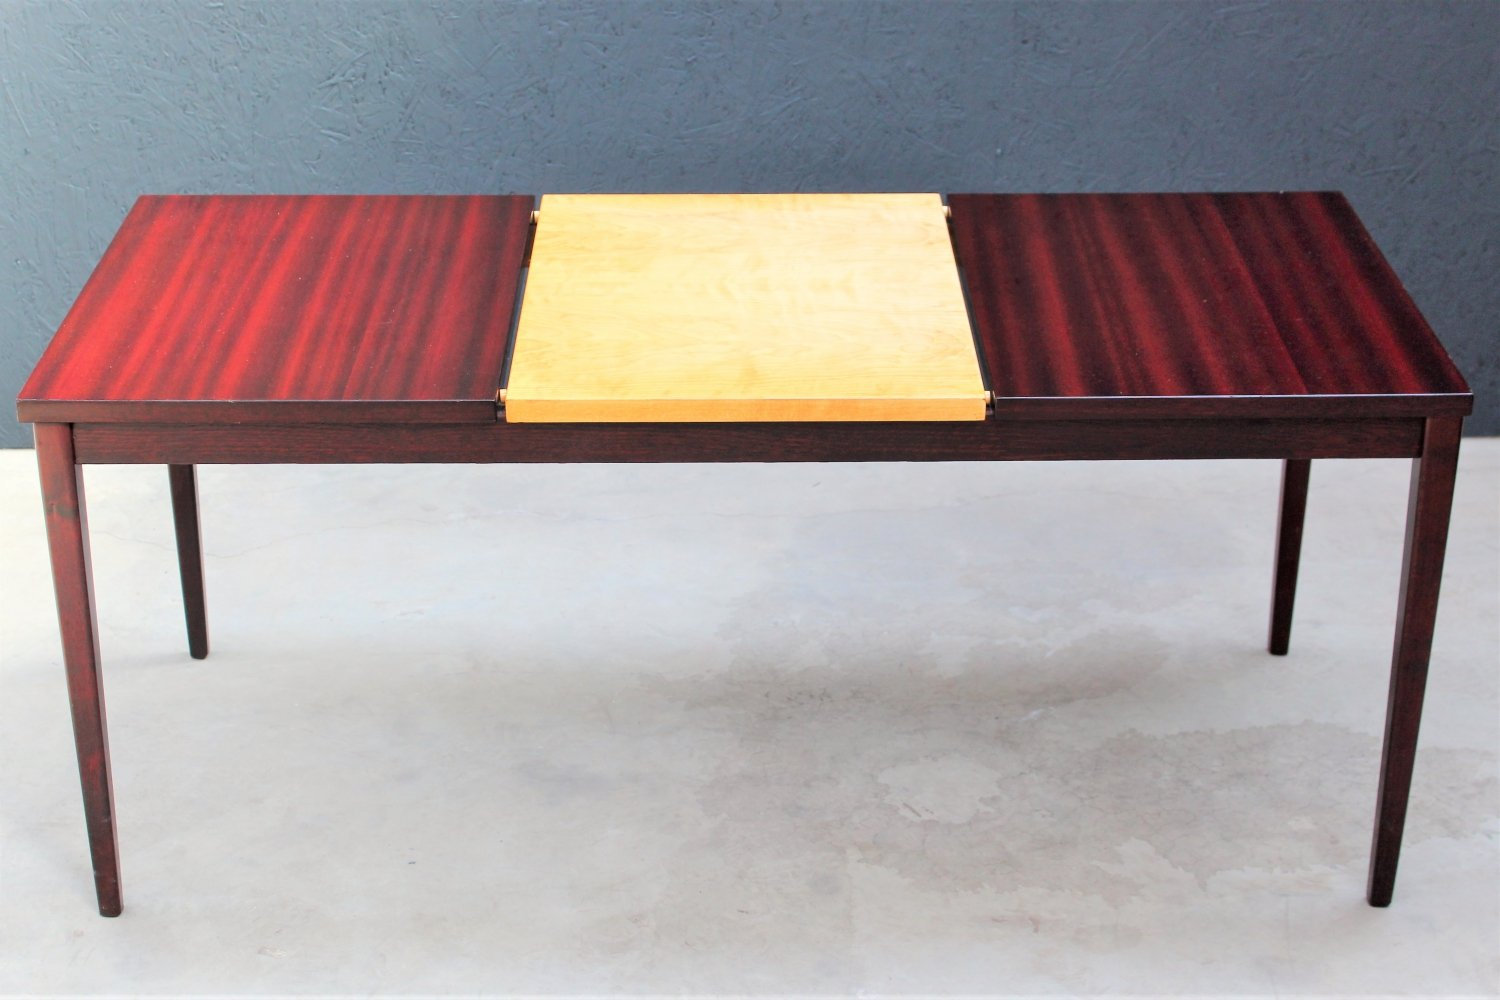 Jitona coffee table, 1970s